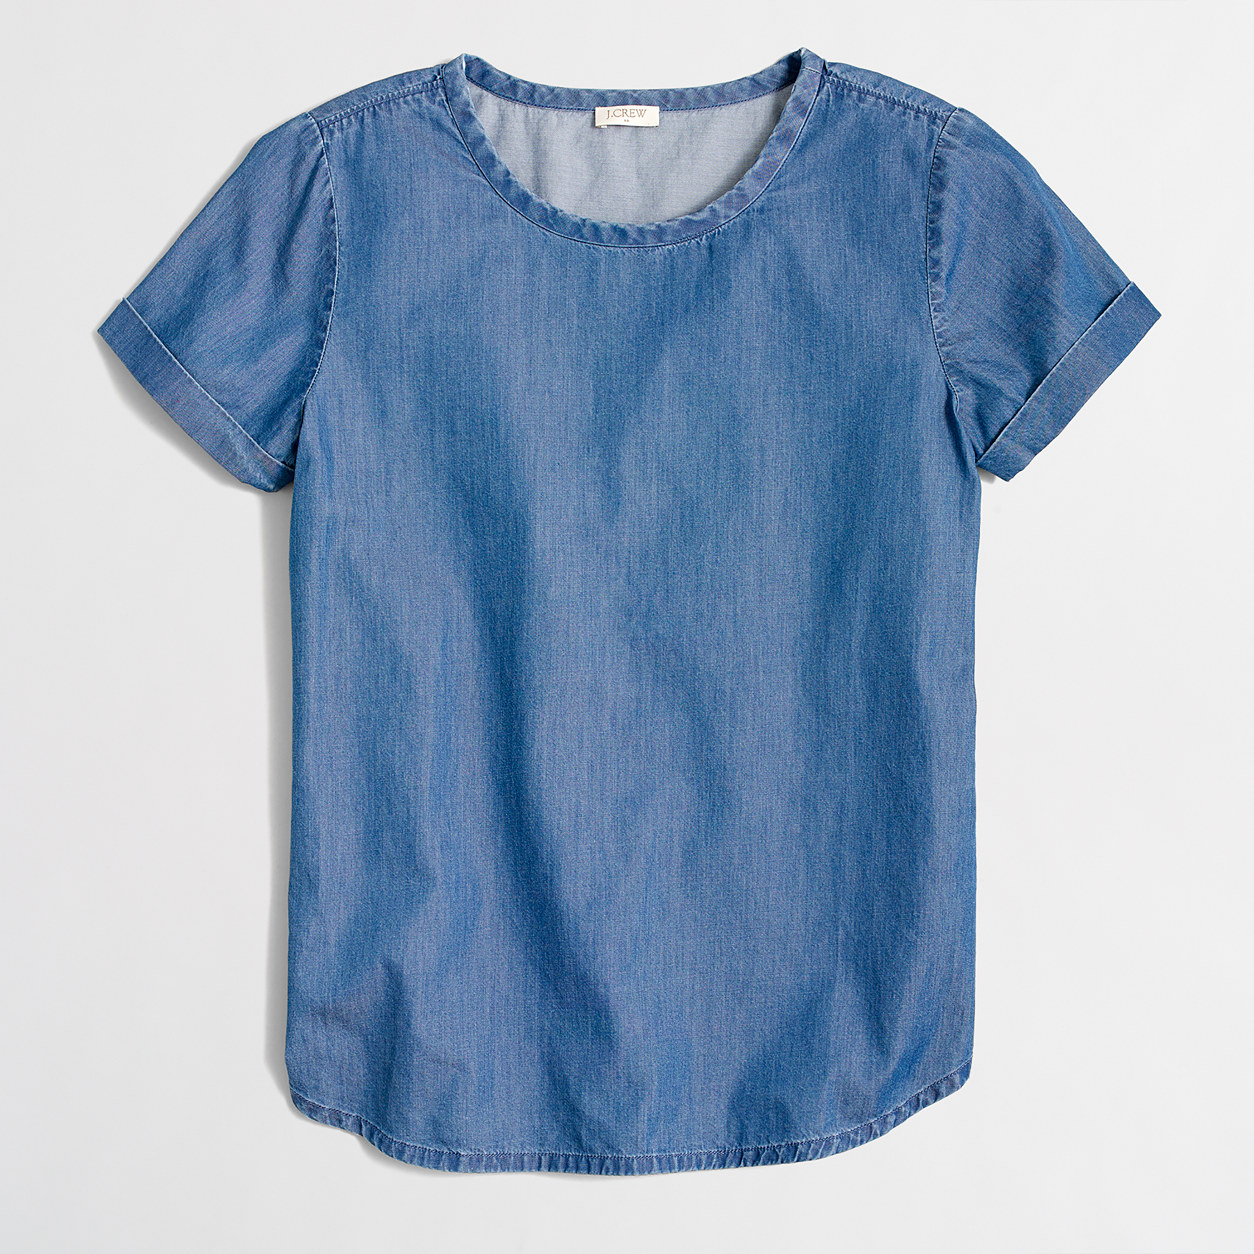 Women's Blouses : Shirts & Tops for Women | J.Crew Factory ...